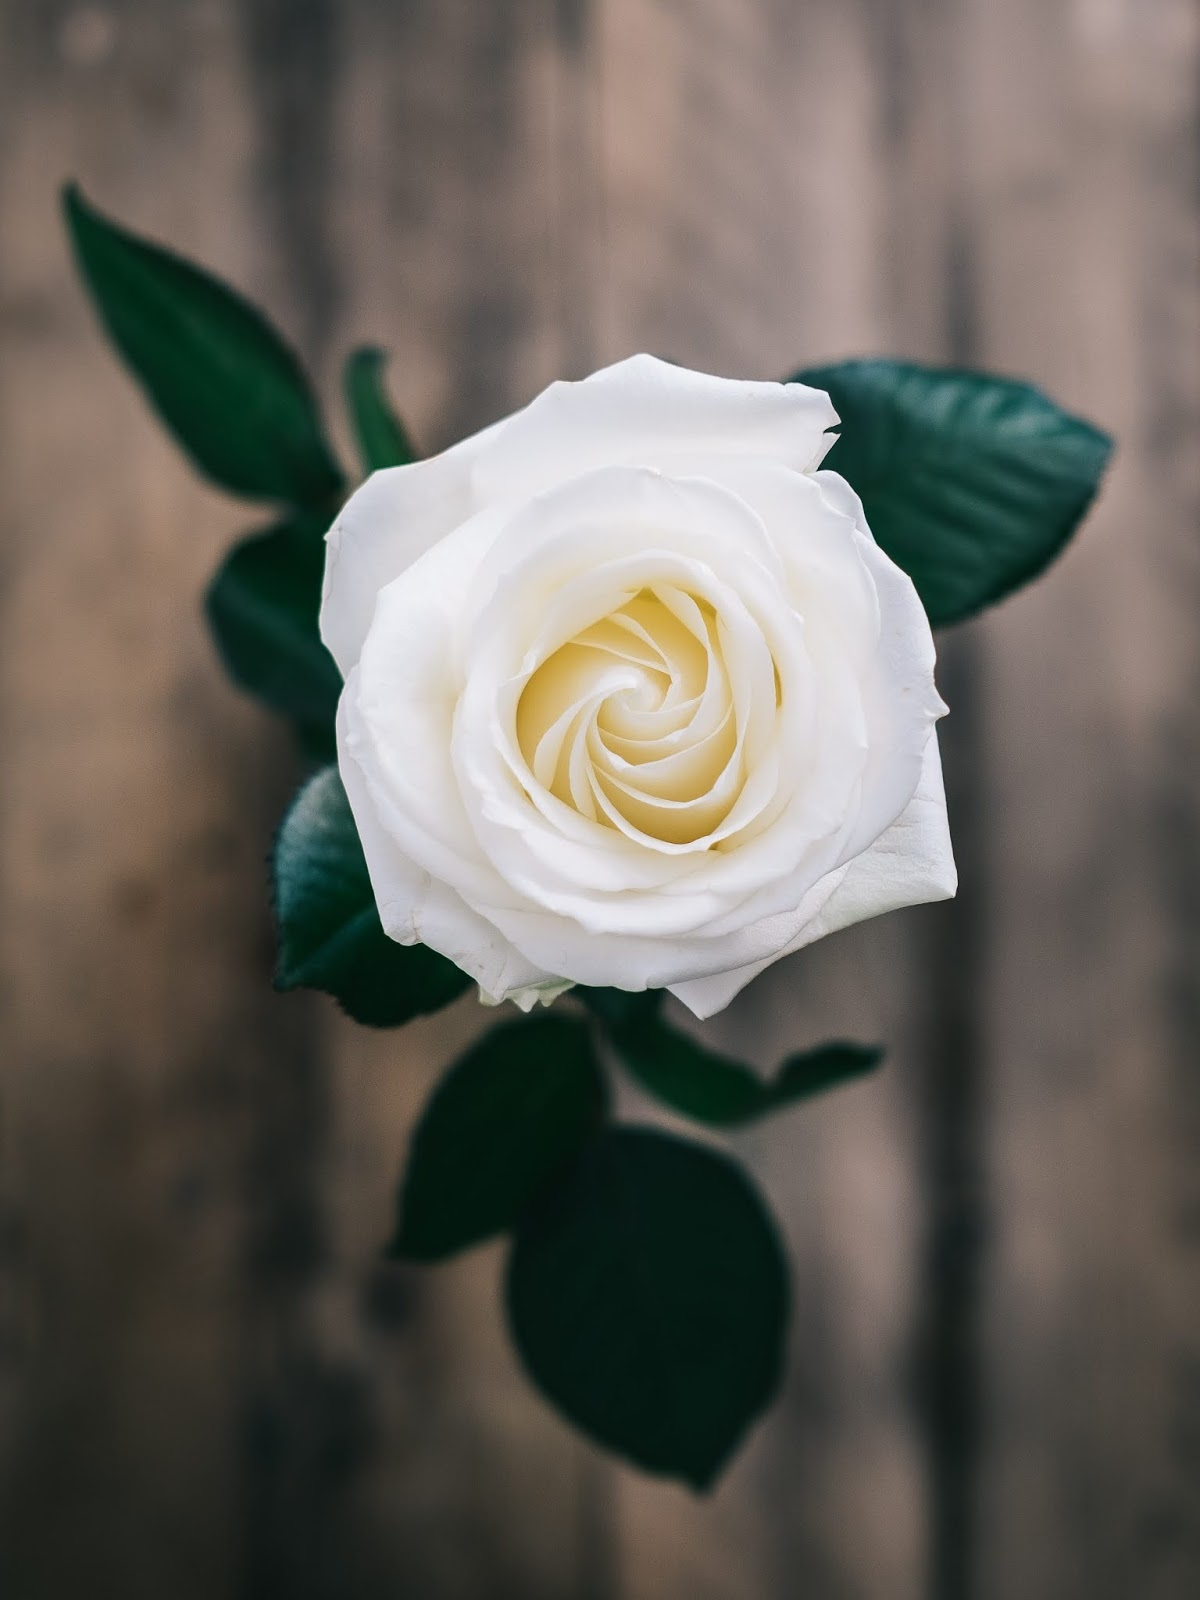 white rose enclosed photograph, rose images